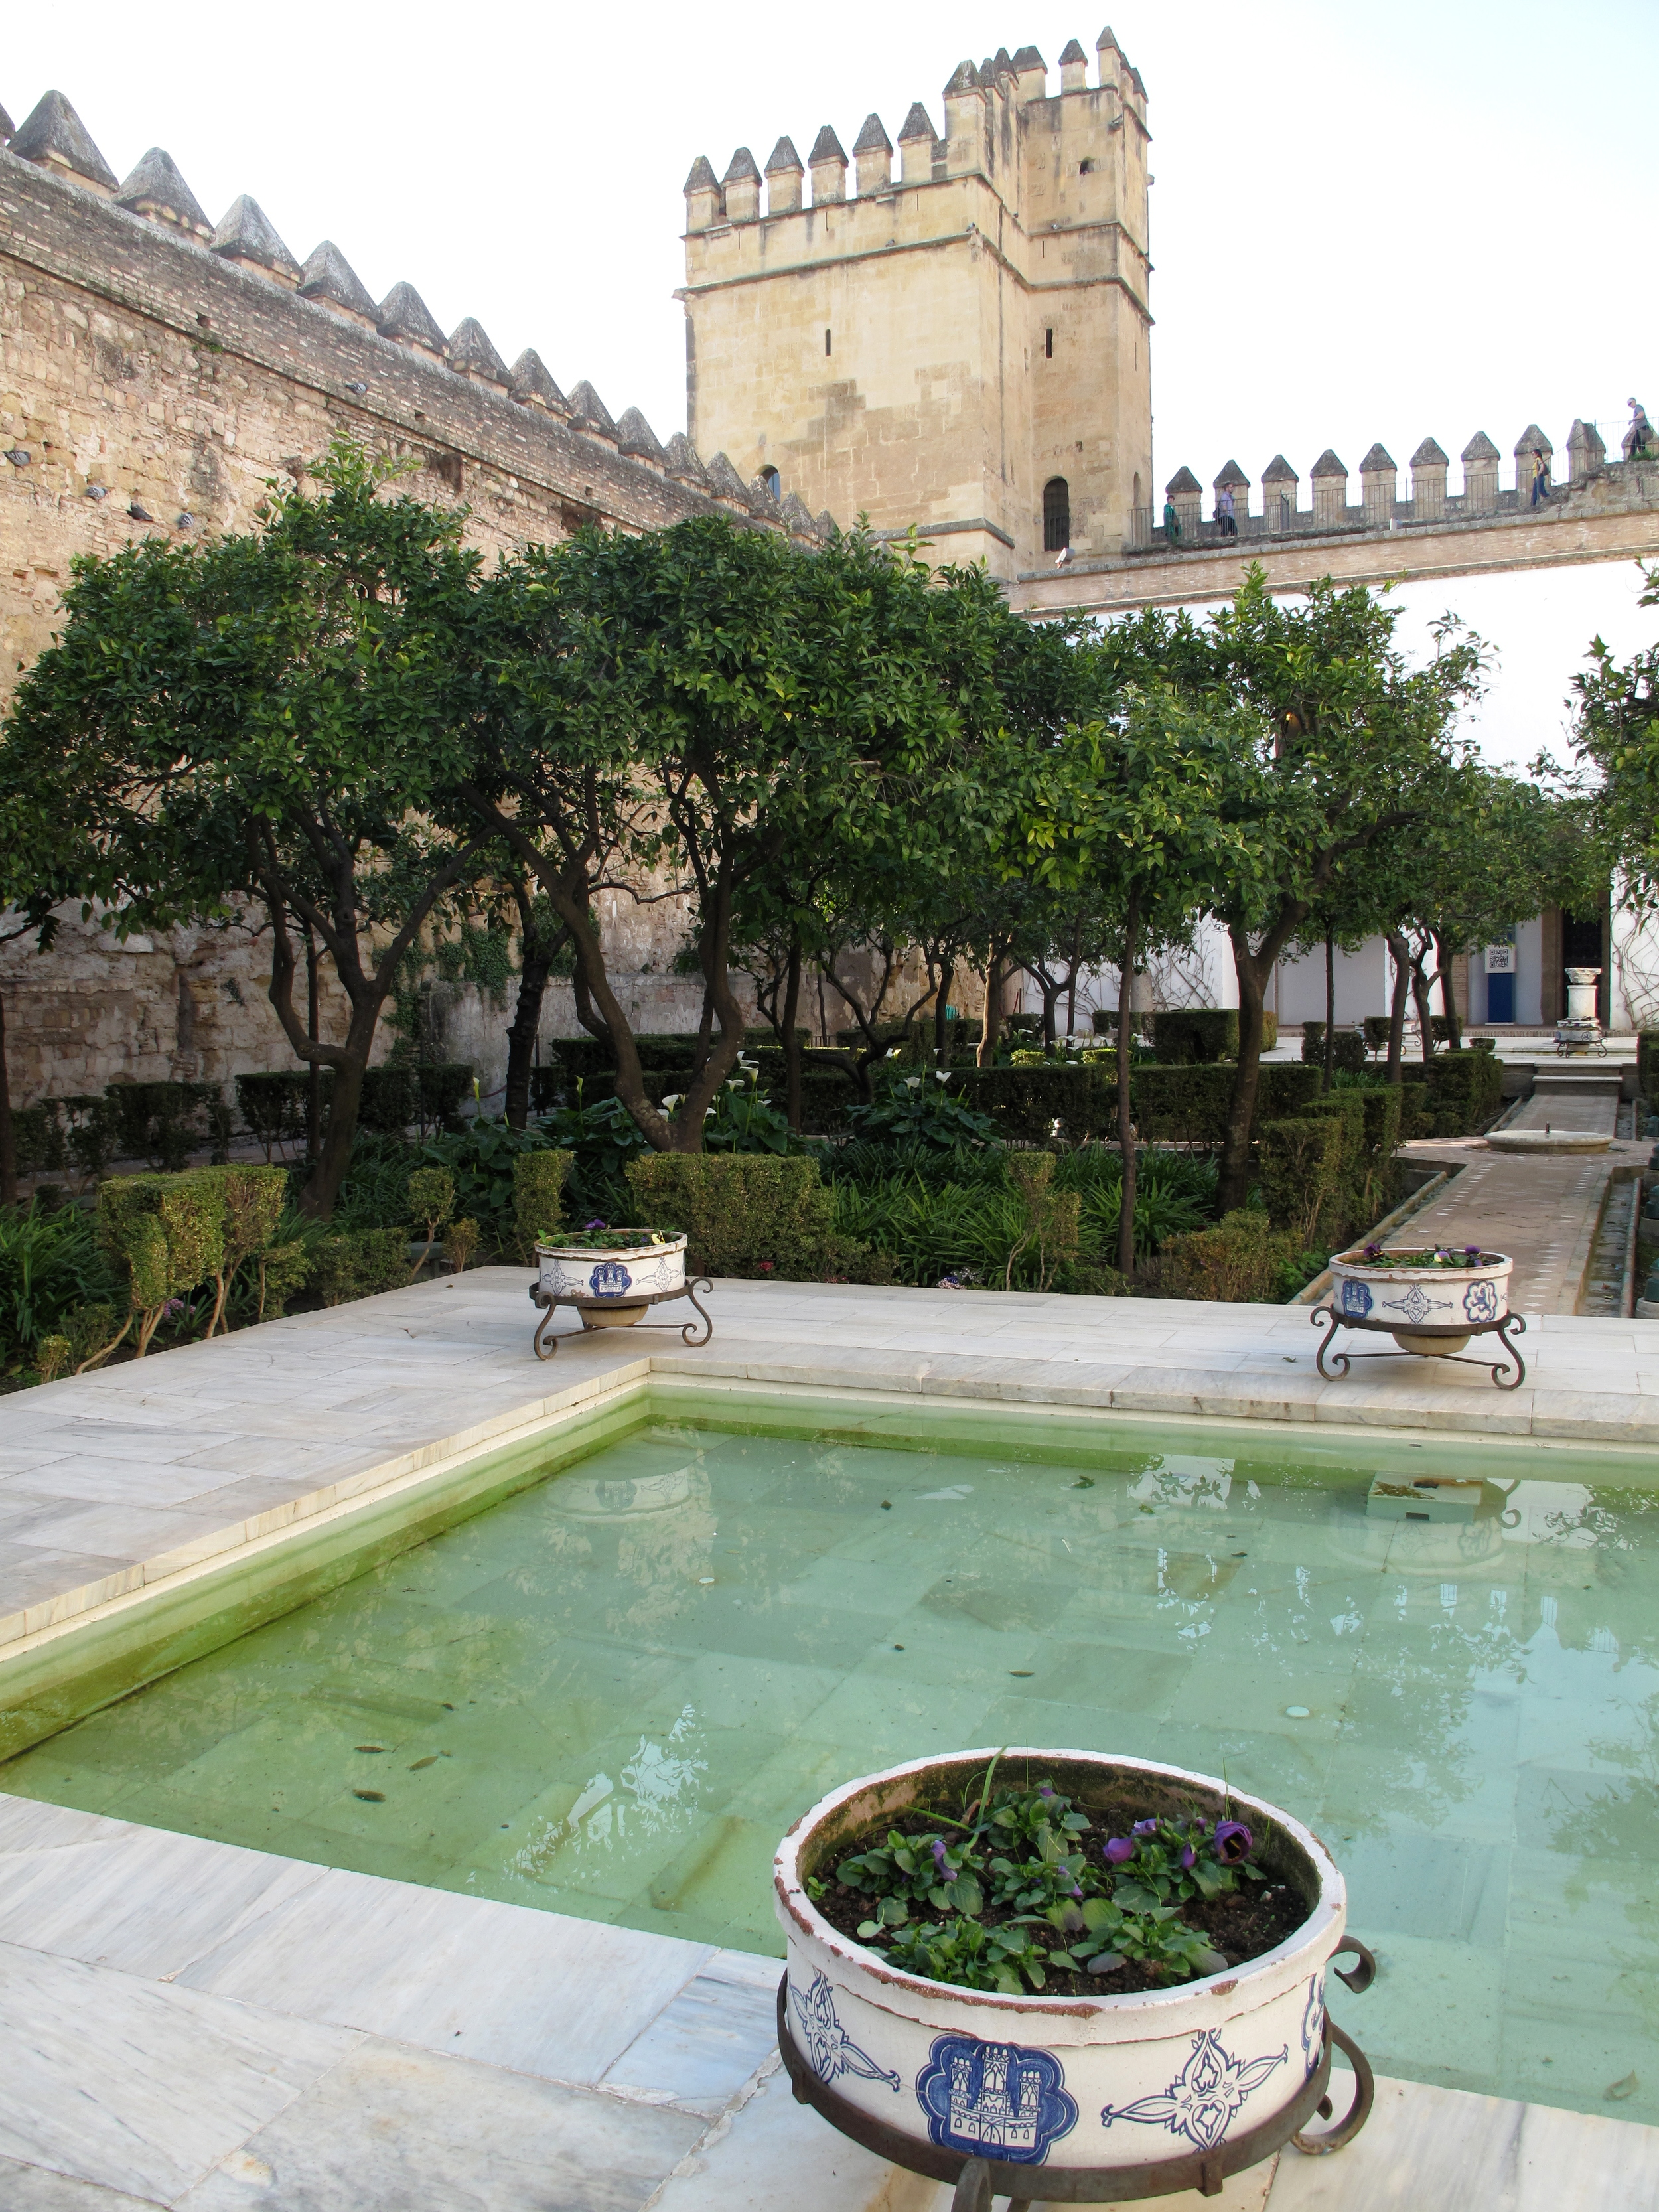 Castle of Alcazar - pool and crenellated walls